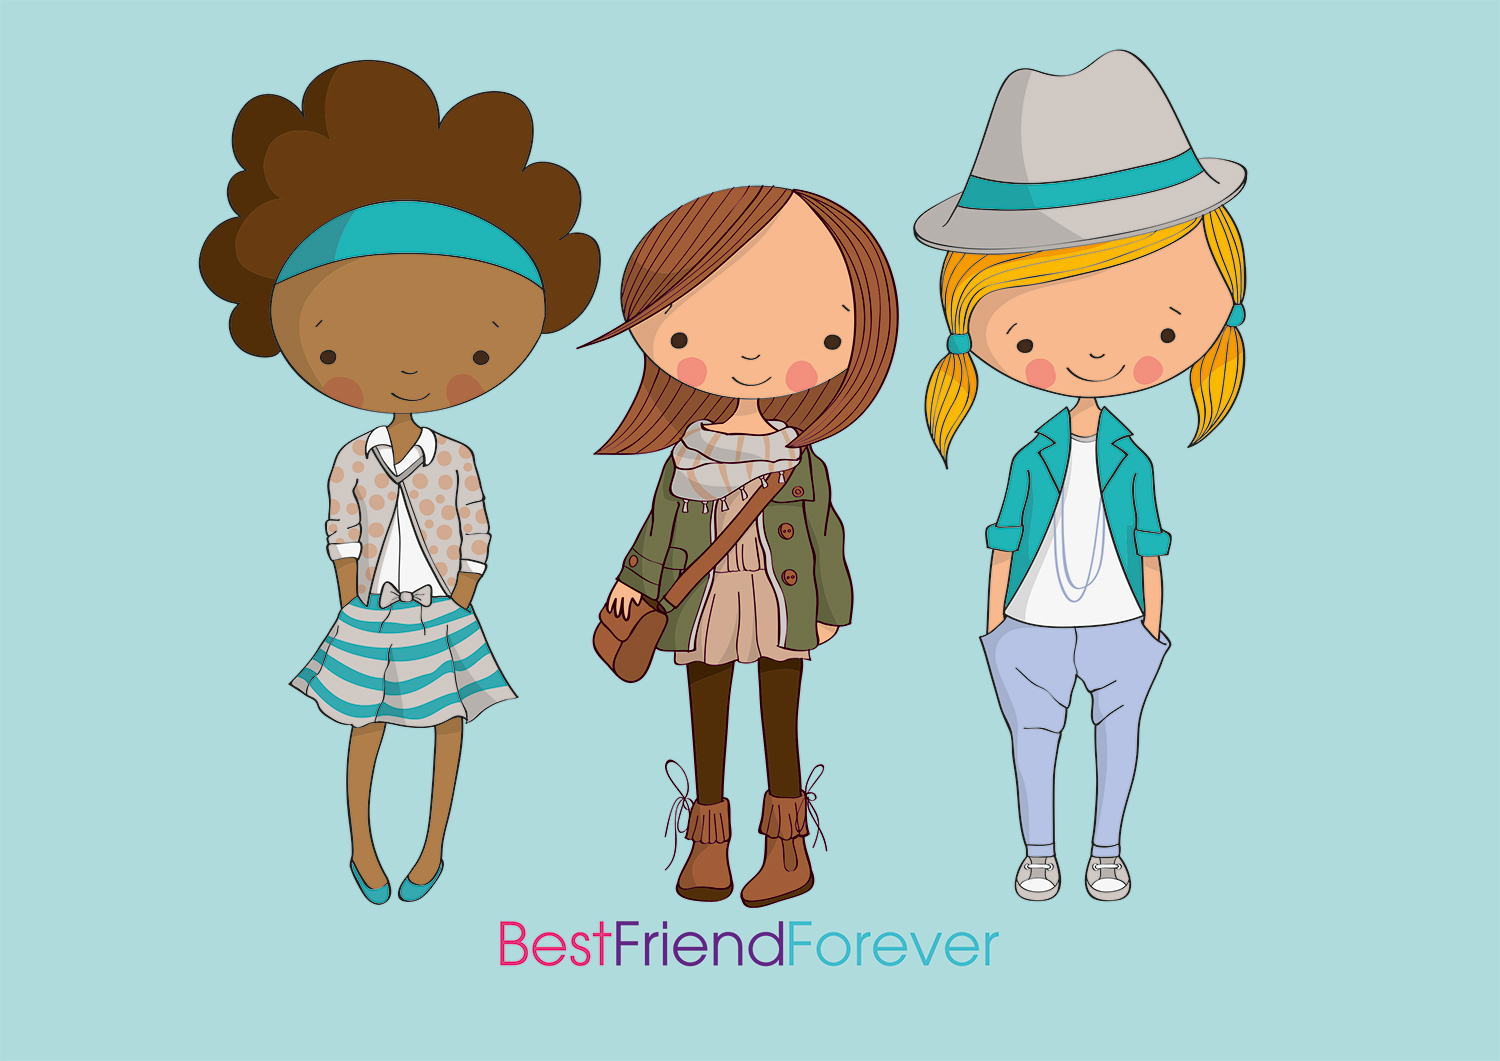 BFF Best Friends Forever example image 5